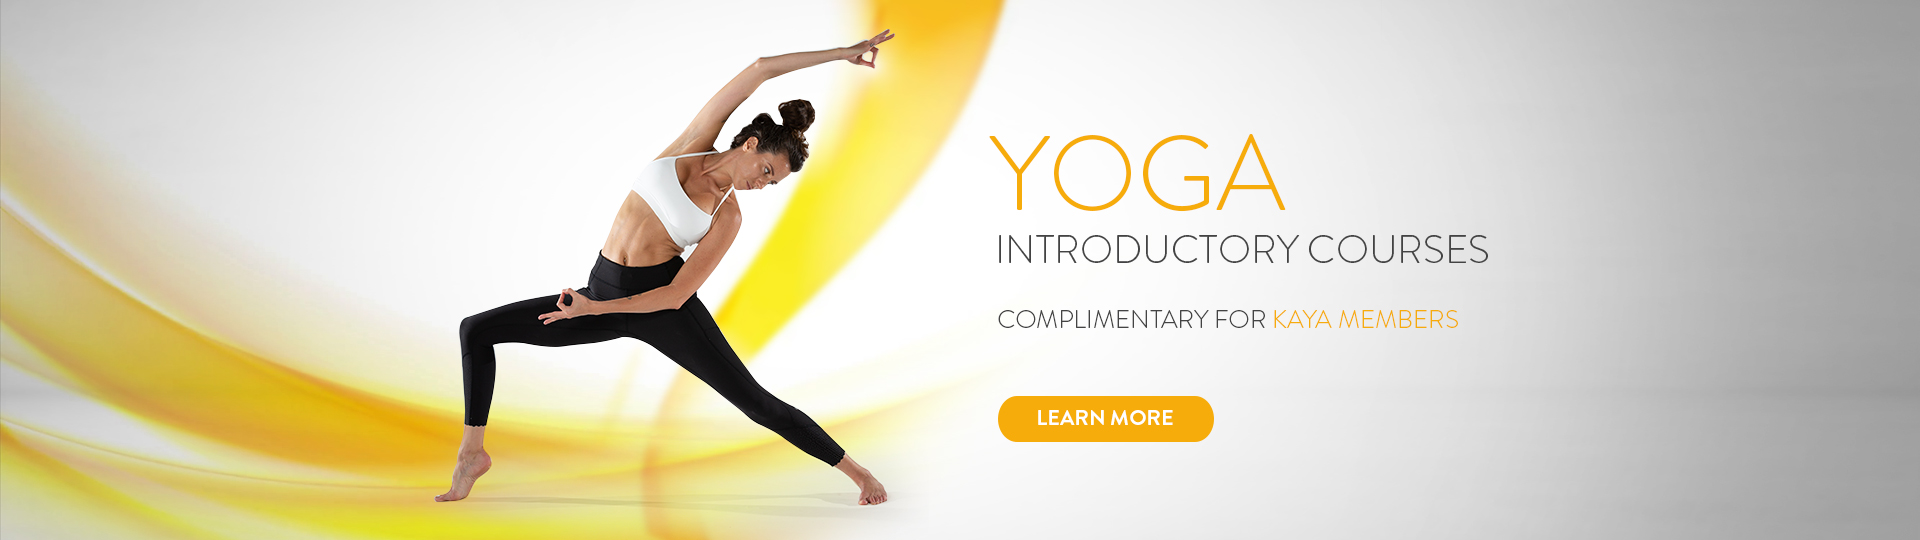 KayaHealth_YogaIntroductory_Slider